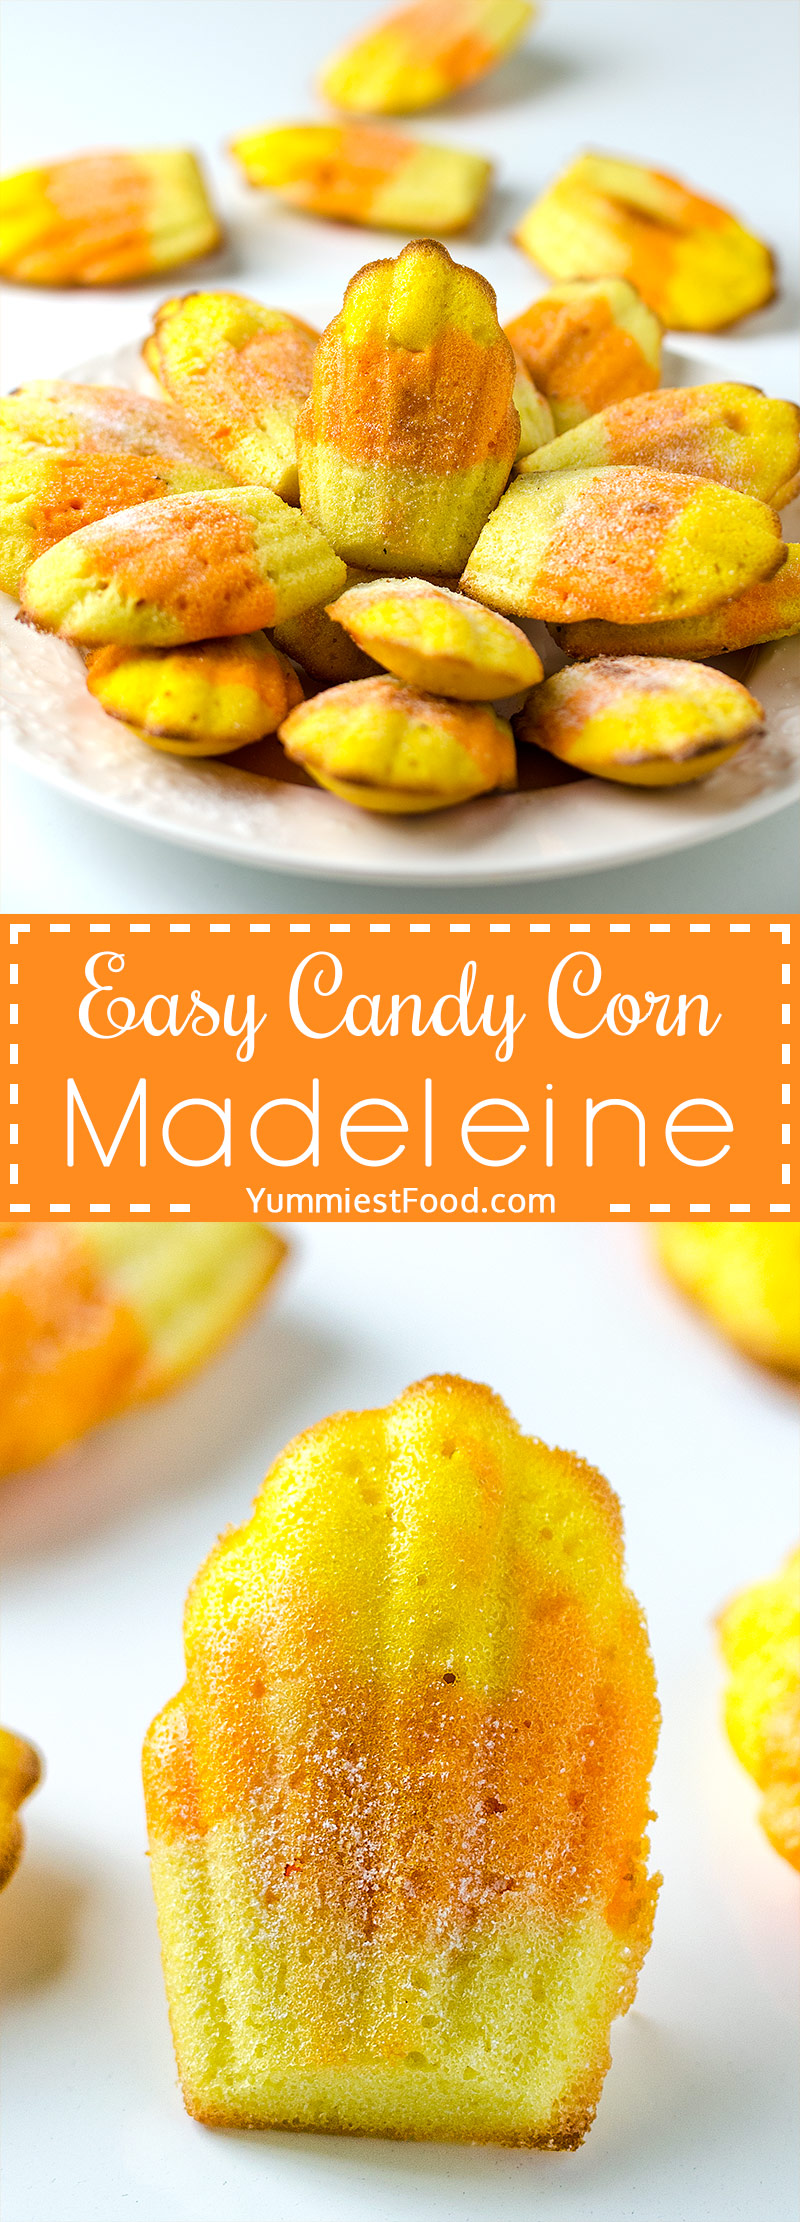 EASY CANDY CORN MADELEINE – Easy and delicious Halloween Candy Corn Madeleine is quick and easy treat that you can make with the kids.